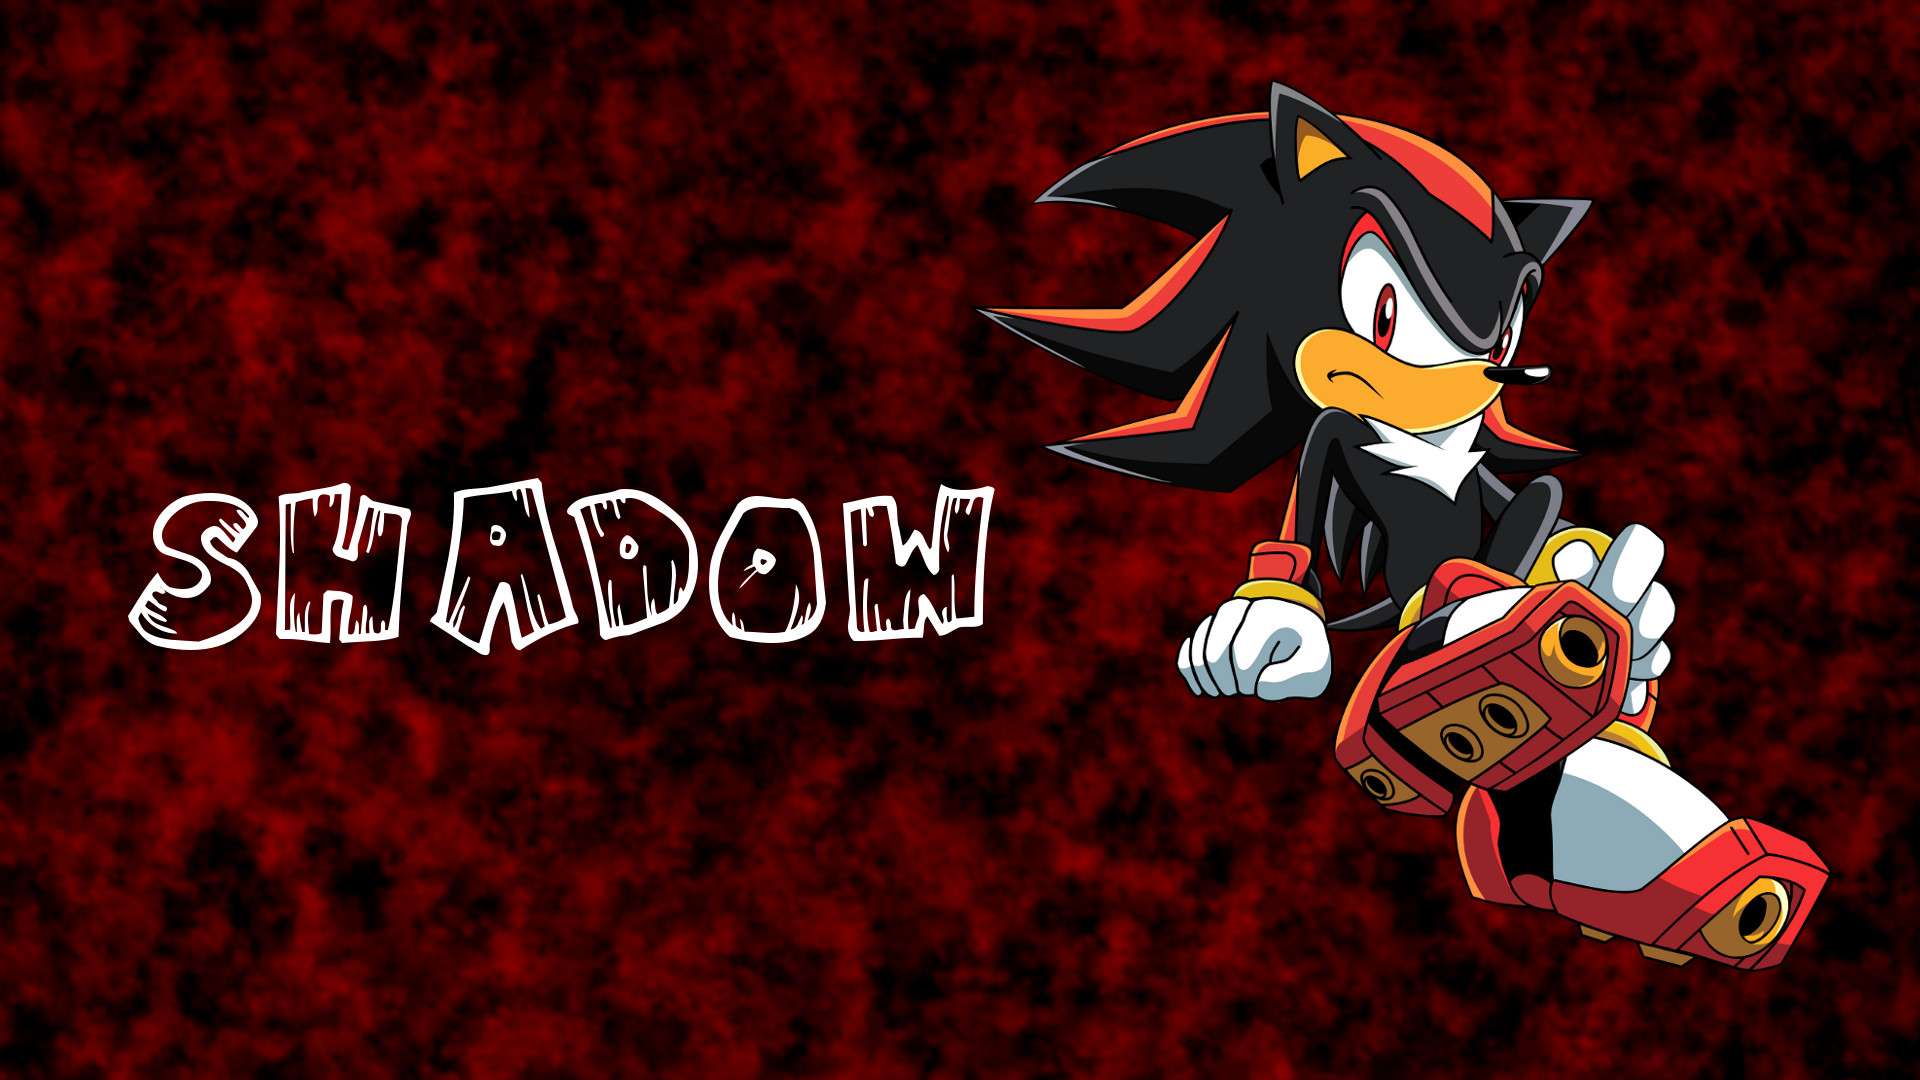 1920x1080 Shadow x amy Fans images Shadow Sonic X Wallpaper HD wallpaper and  background photos